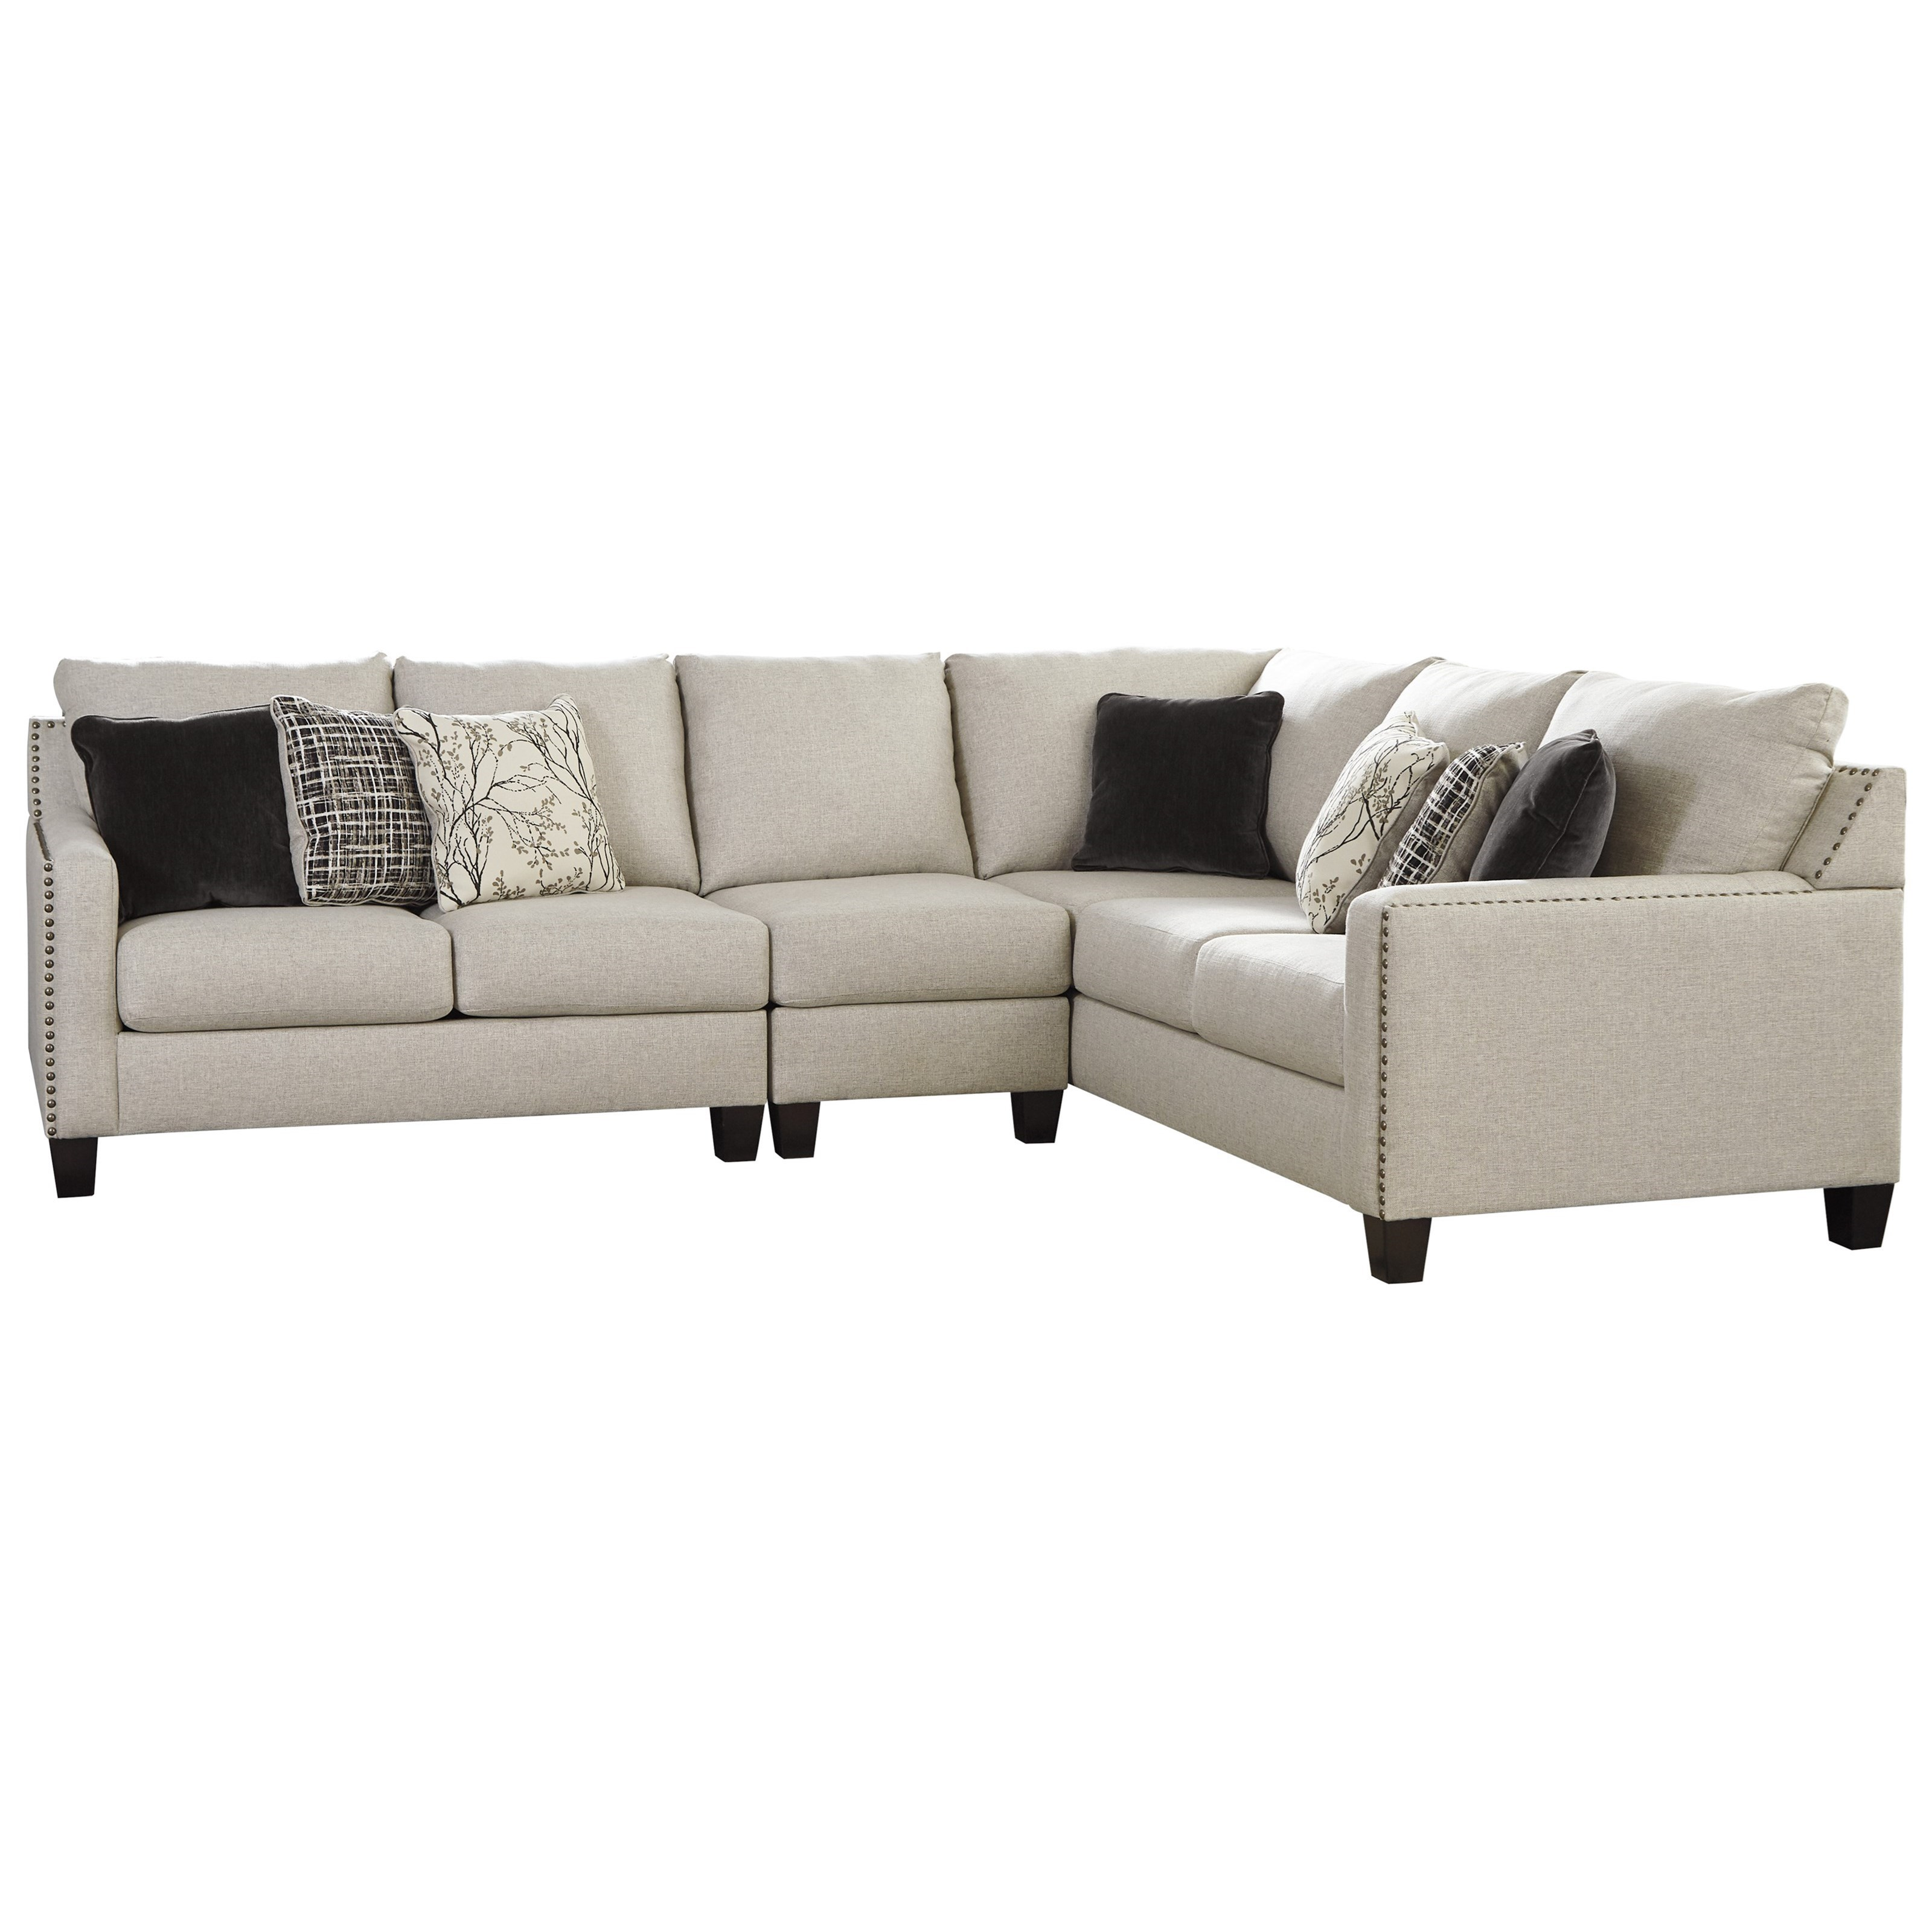 nailhead trim sofa ashley mixing leather and fabric loveseat signature design hallenberg three piece sectional